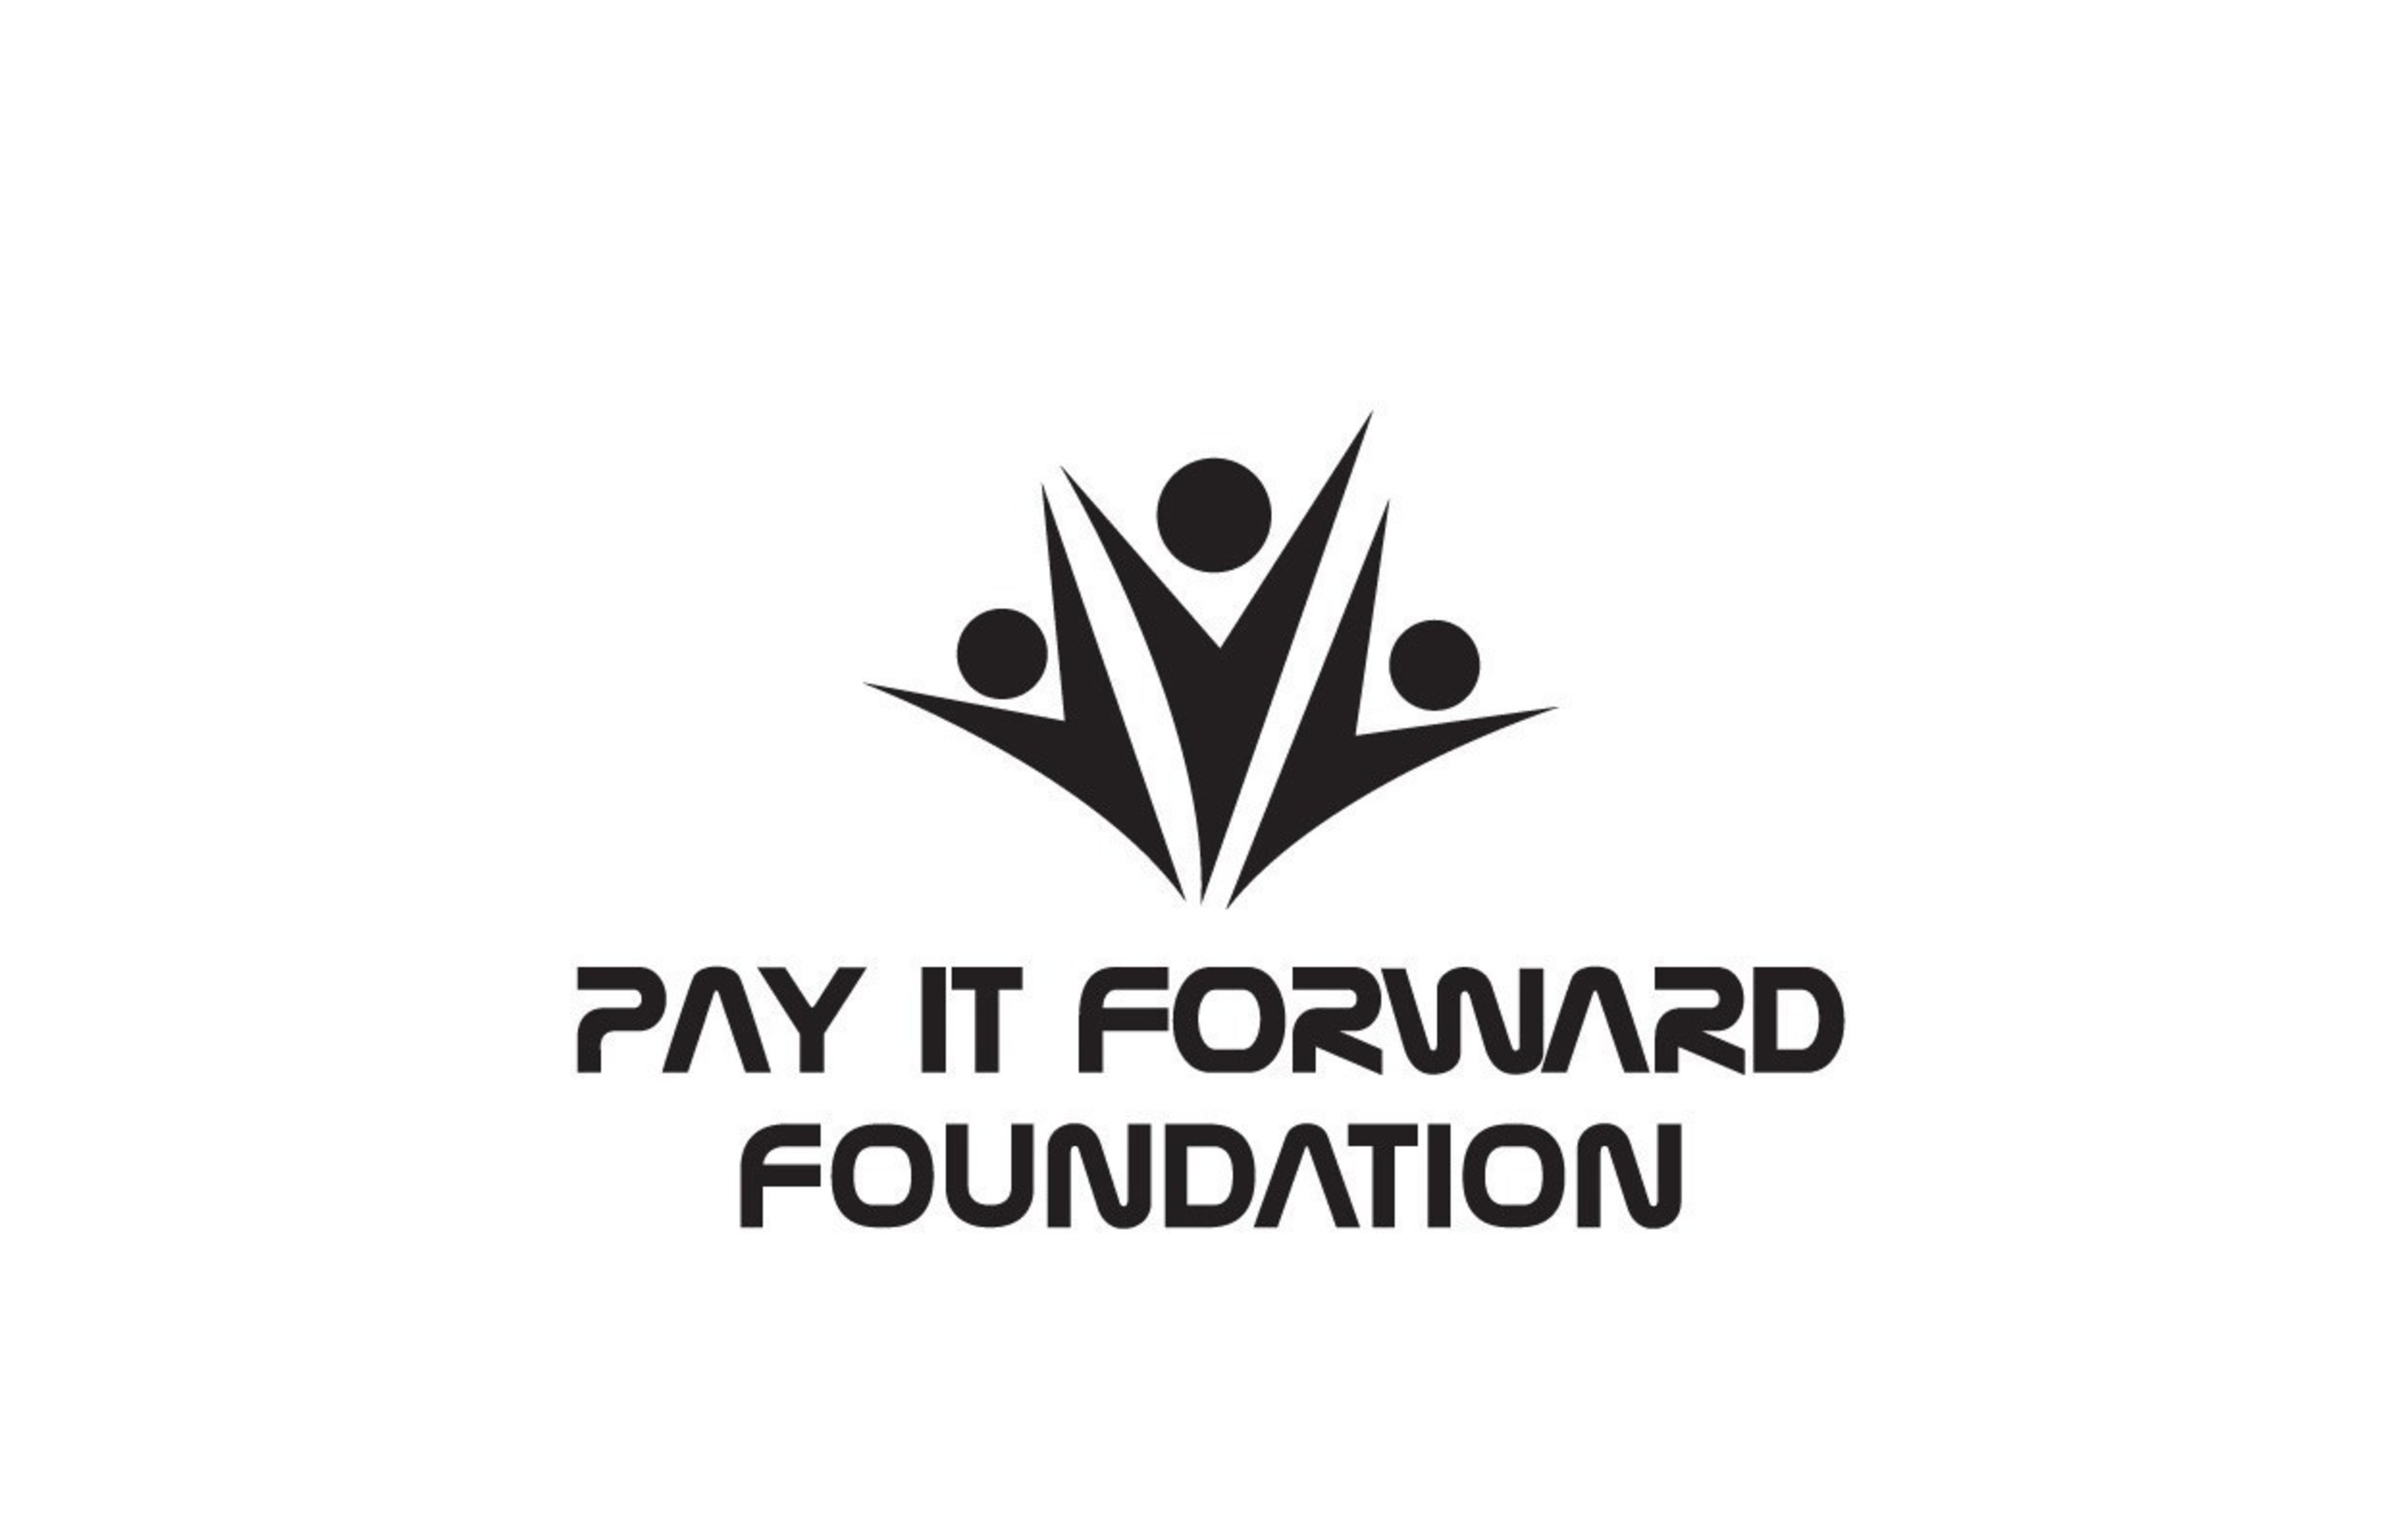 Learn more about International Pay It Forward Day or the Pay It Forward Foundation by visiting http://www.payitforwardfoundation.org/.